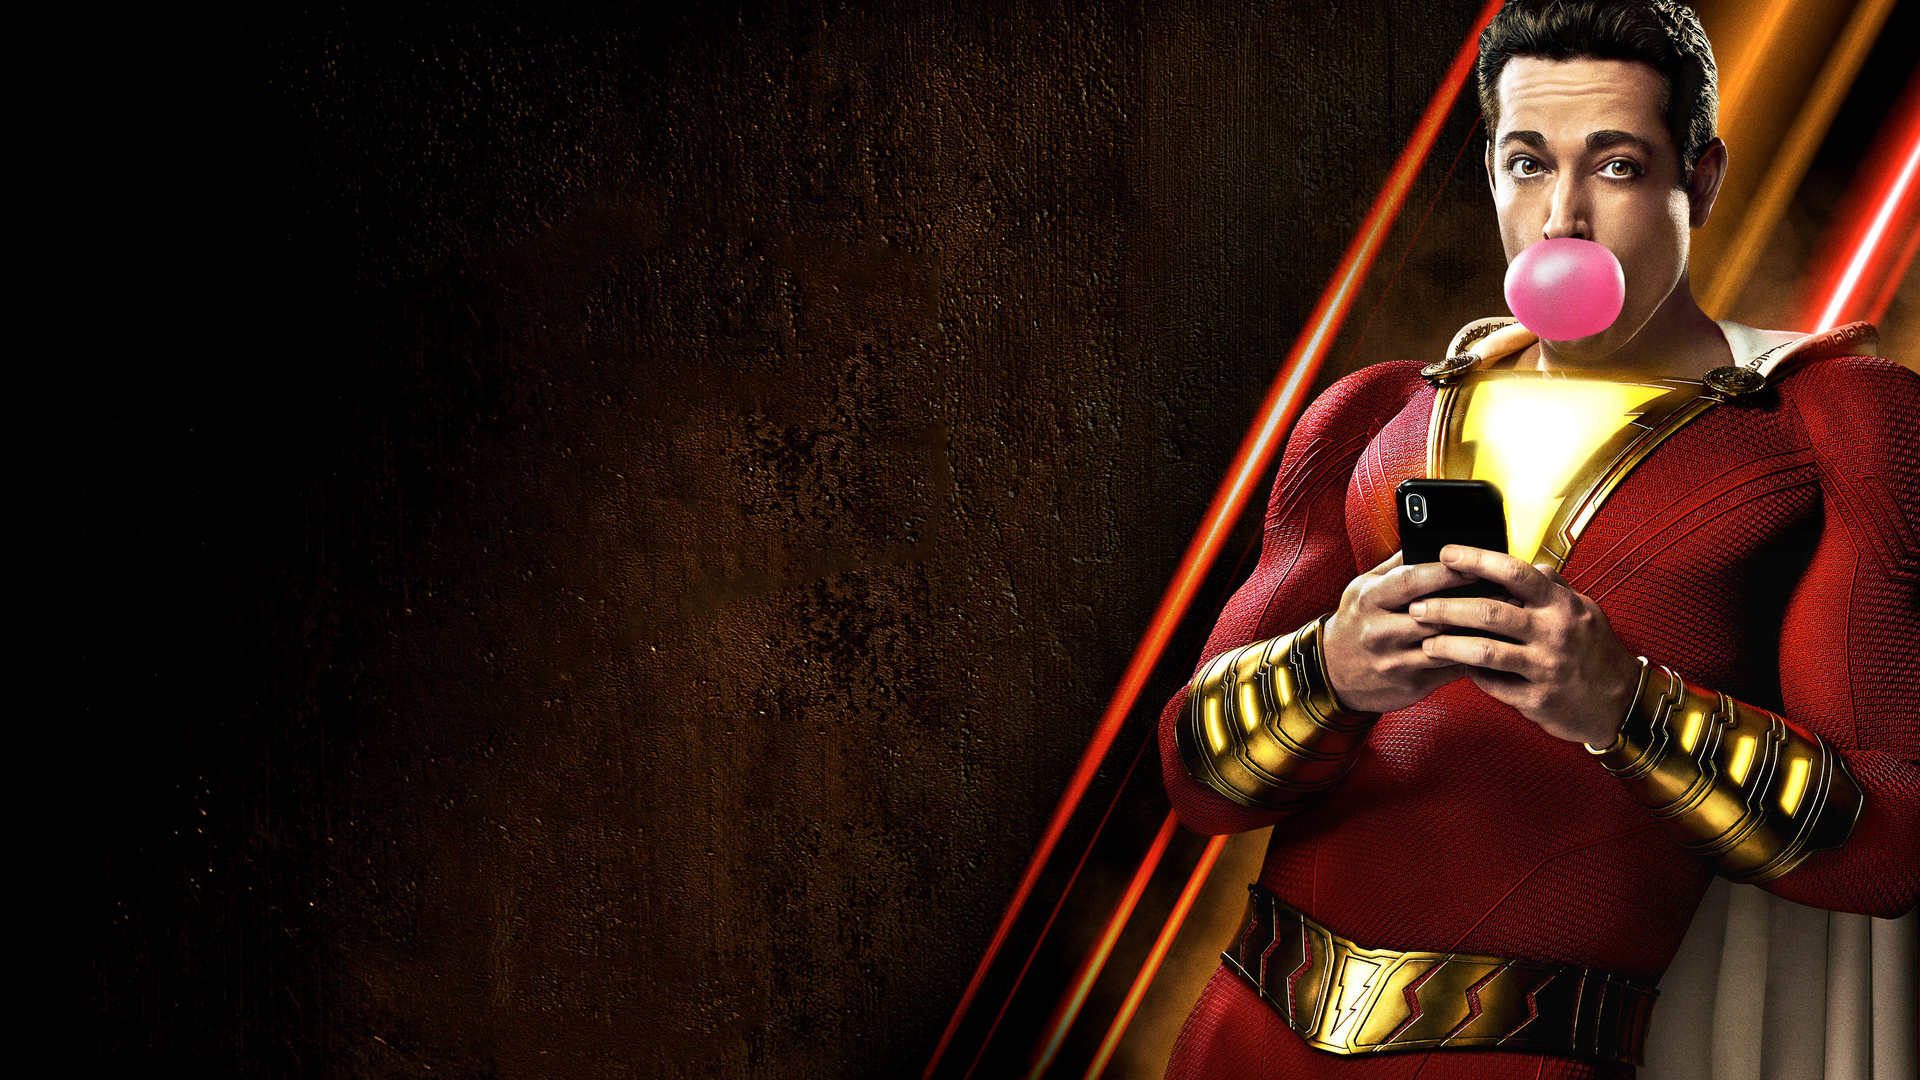 SHAZAM! Gets An Awesome New Chinese Poster Ahead Of Its